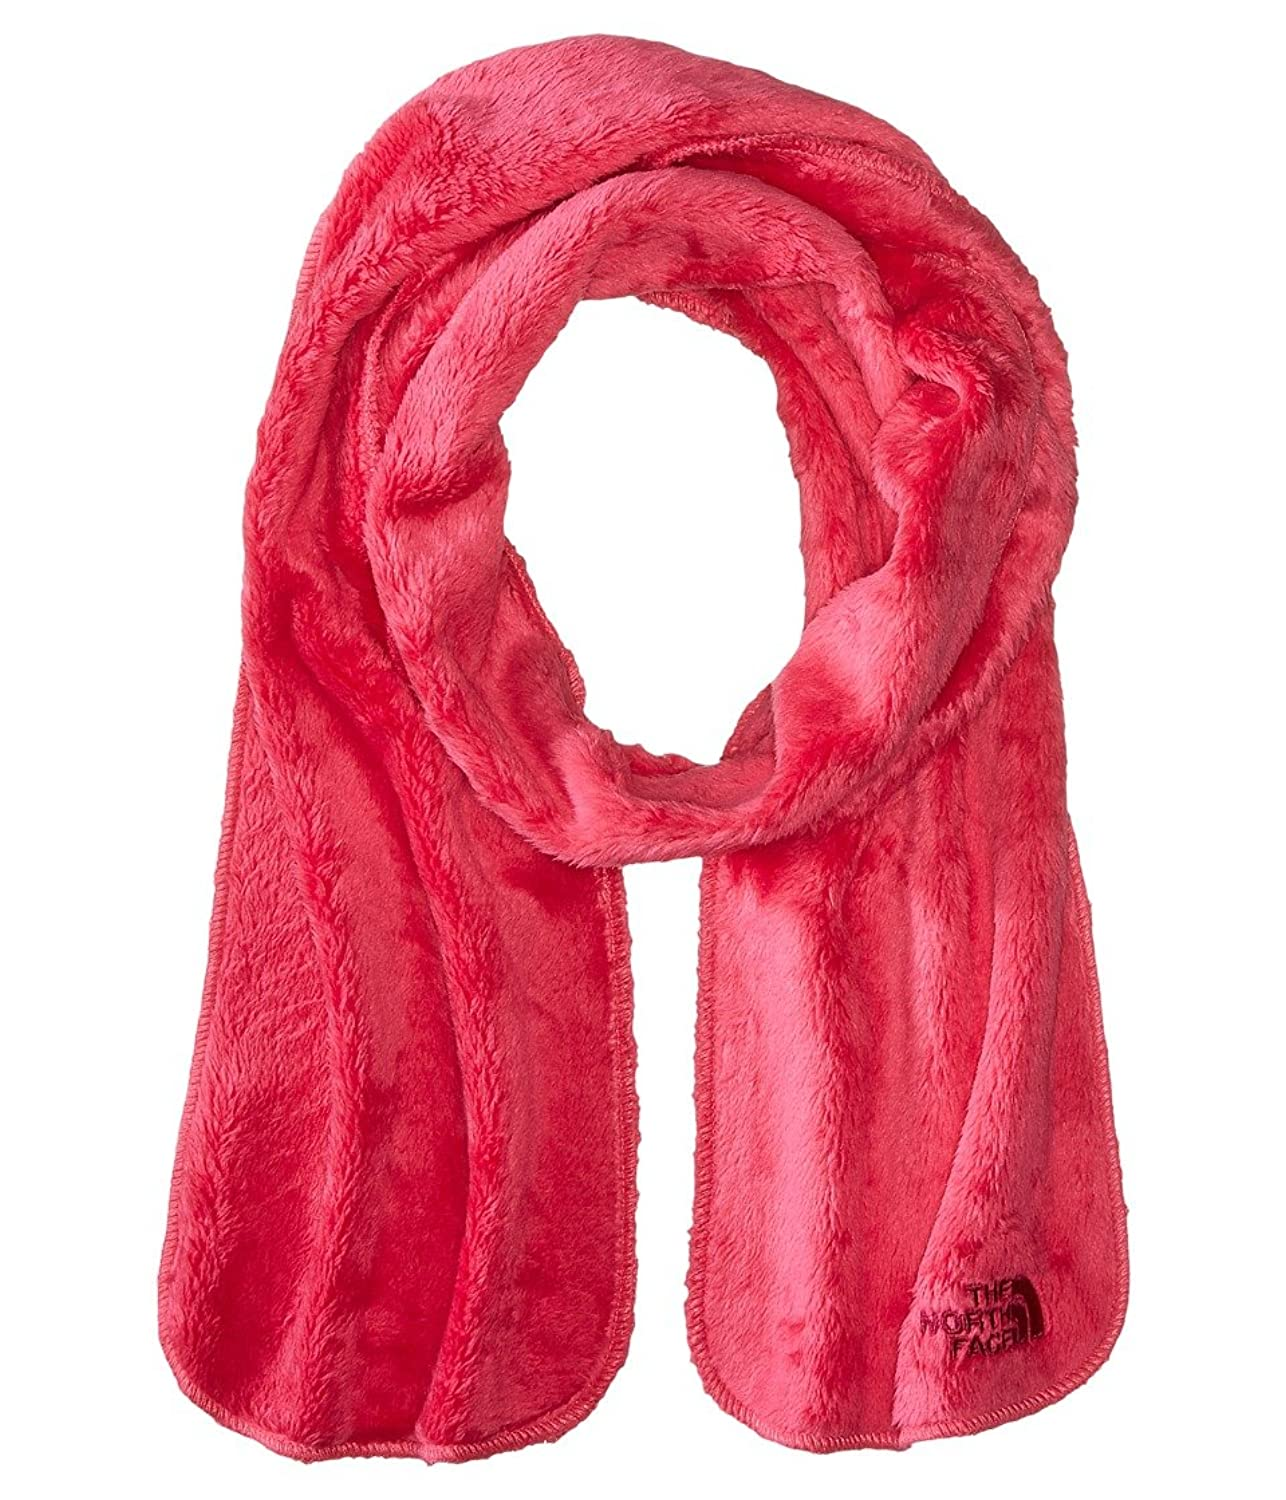 Amazon.com: The North Face Denali Thermal Scarf Girls' Cabaret Pink One  Size: Sports & Outdoors